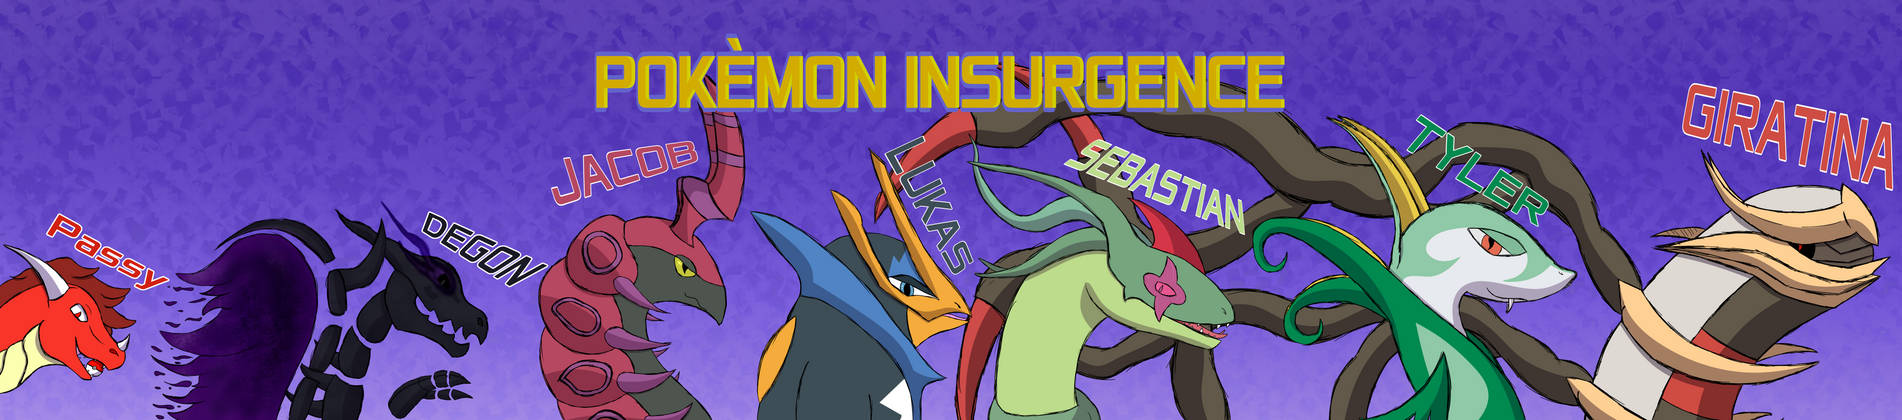 Pokemon insurgence team